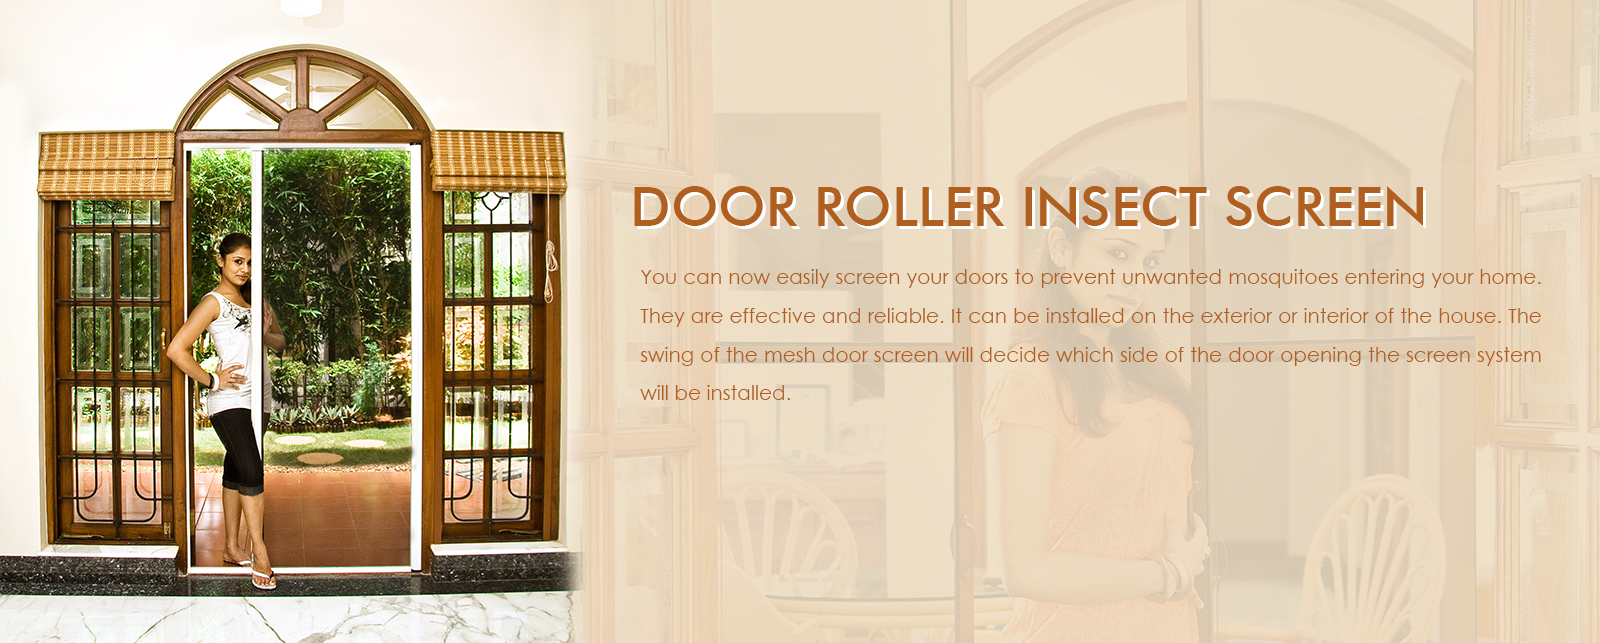 Roller insect Screens in Bangalore